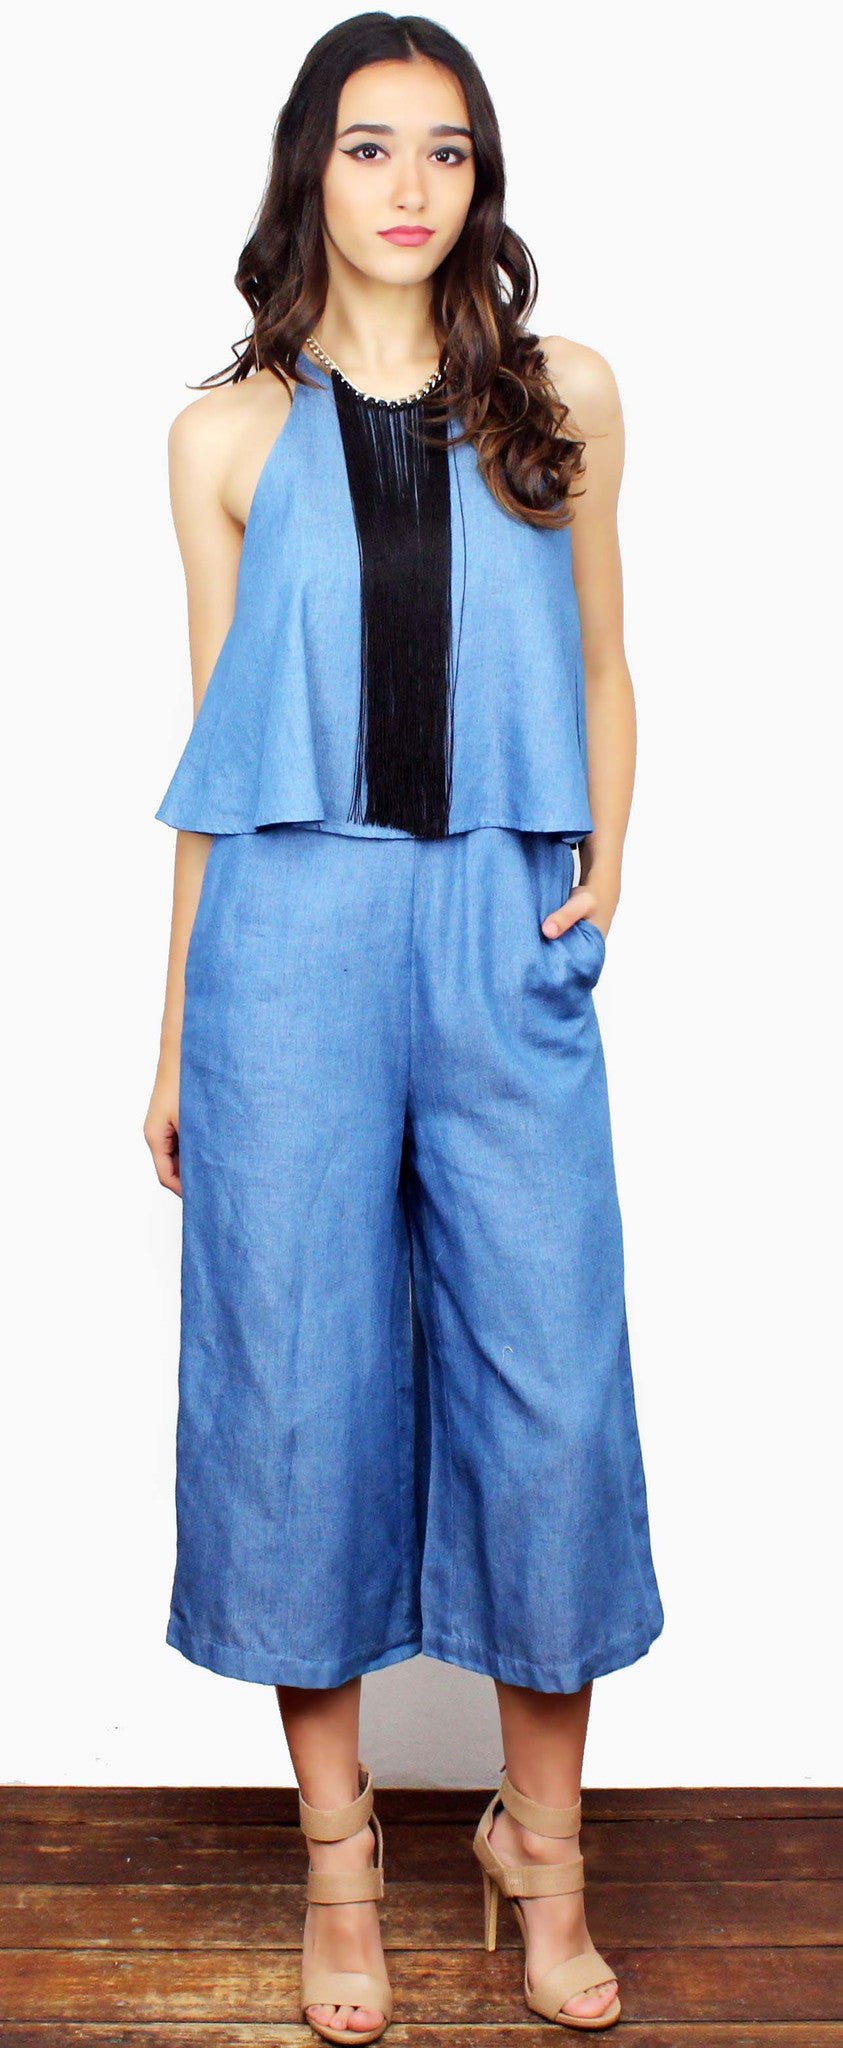 Such a Sweetie Denim Culotte Romper